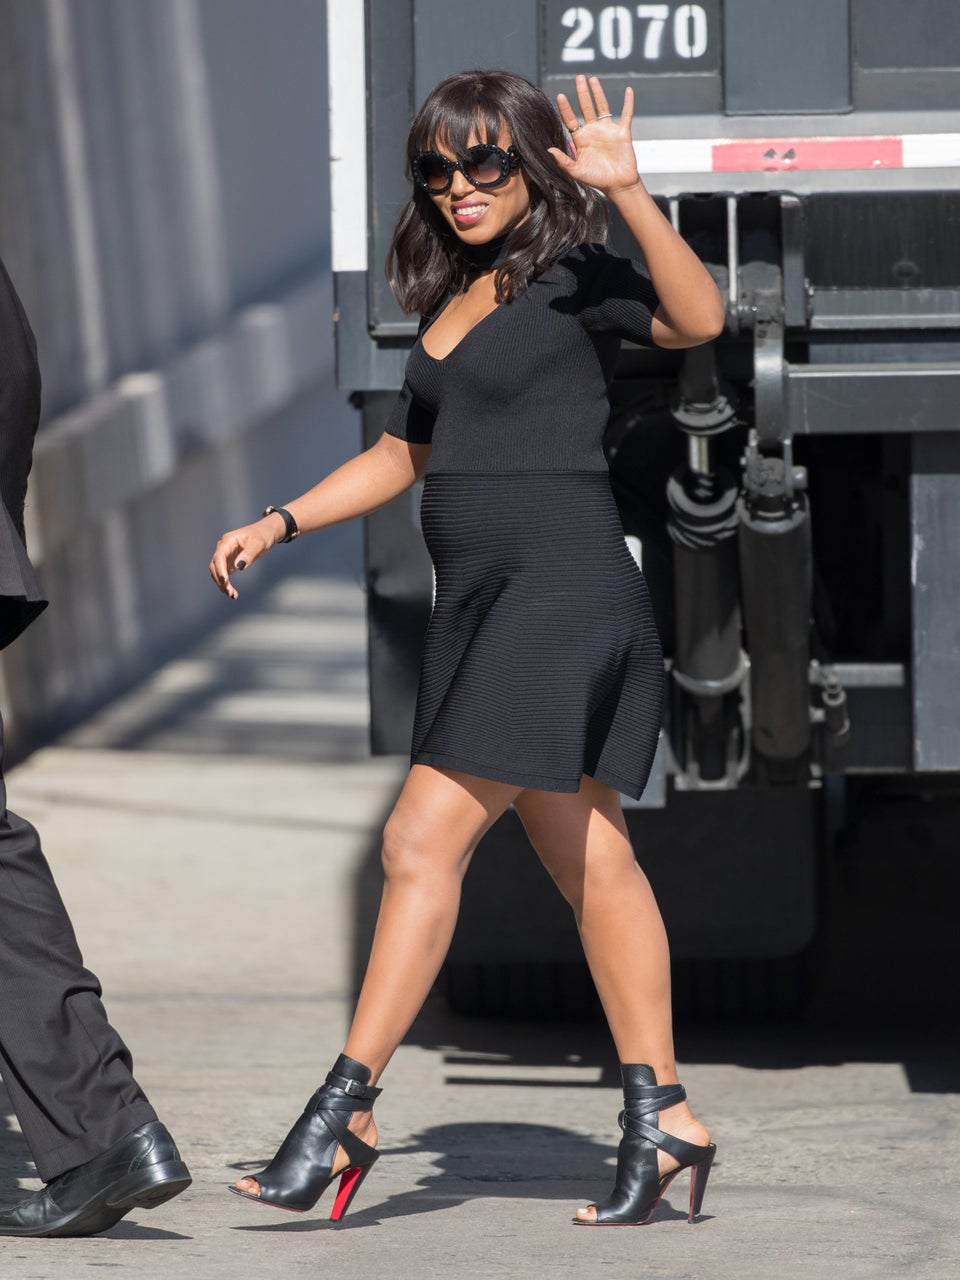 Photo Fab: Kerry Washington's Chic Pregnancy Look is Seriously Too Cute